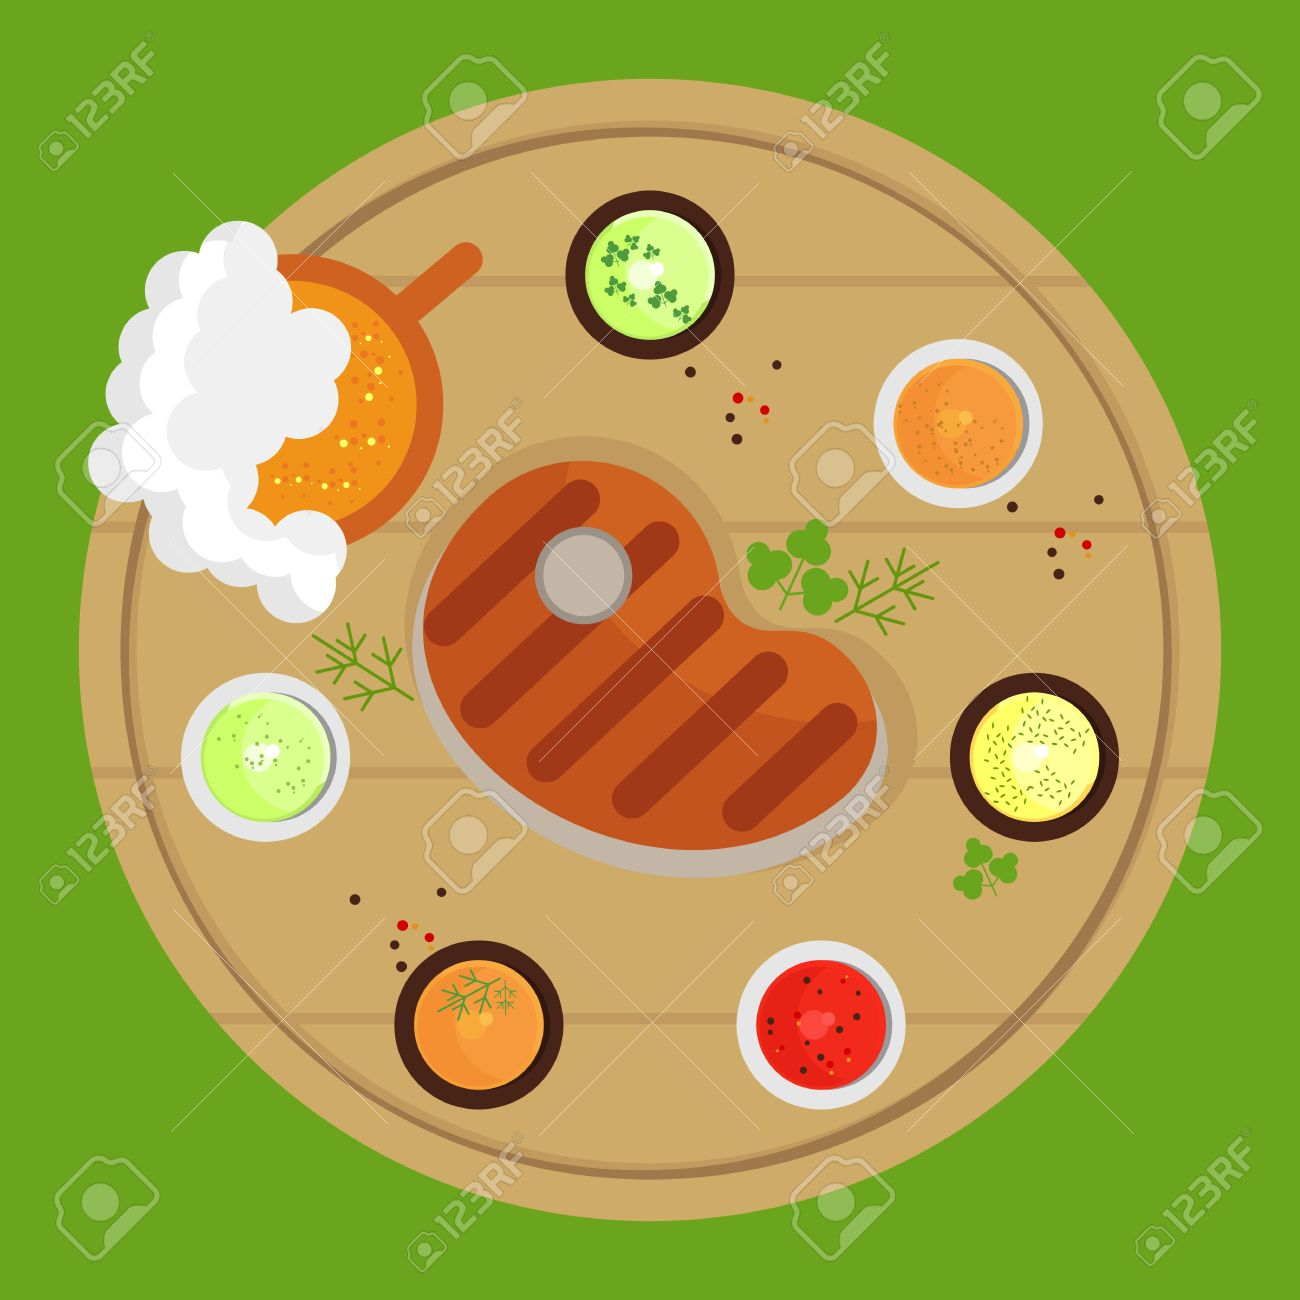 457 Grill Top Stock Vector Illustration And Royalty Free Grill Top.